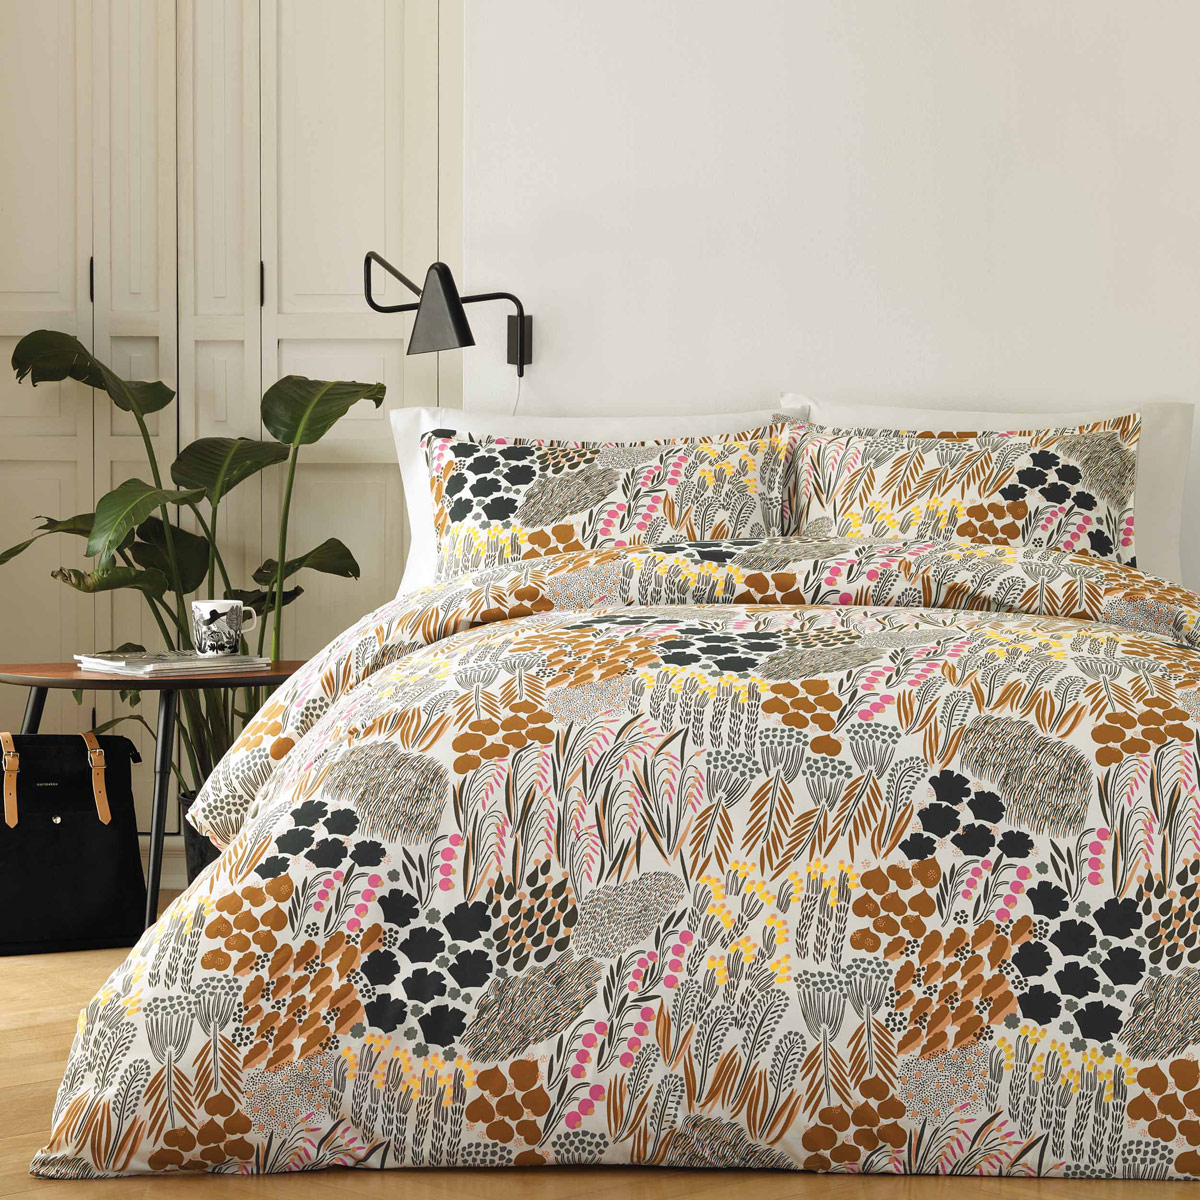 duvet quilt multi pieridae covers bedding king cat sm product cover huggable set